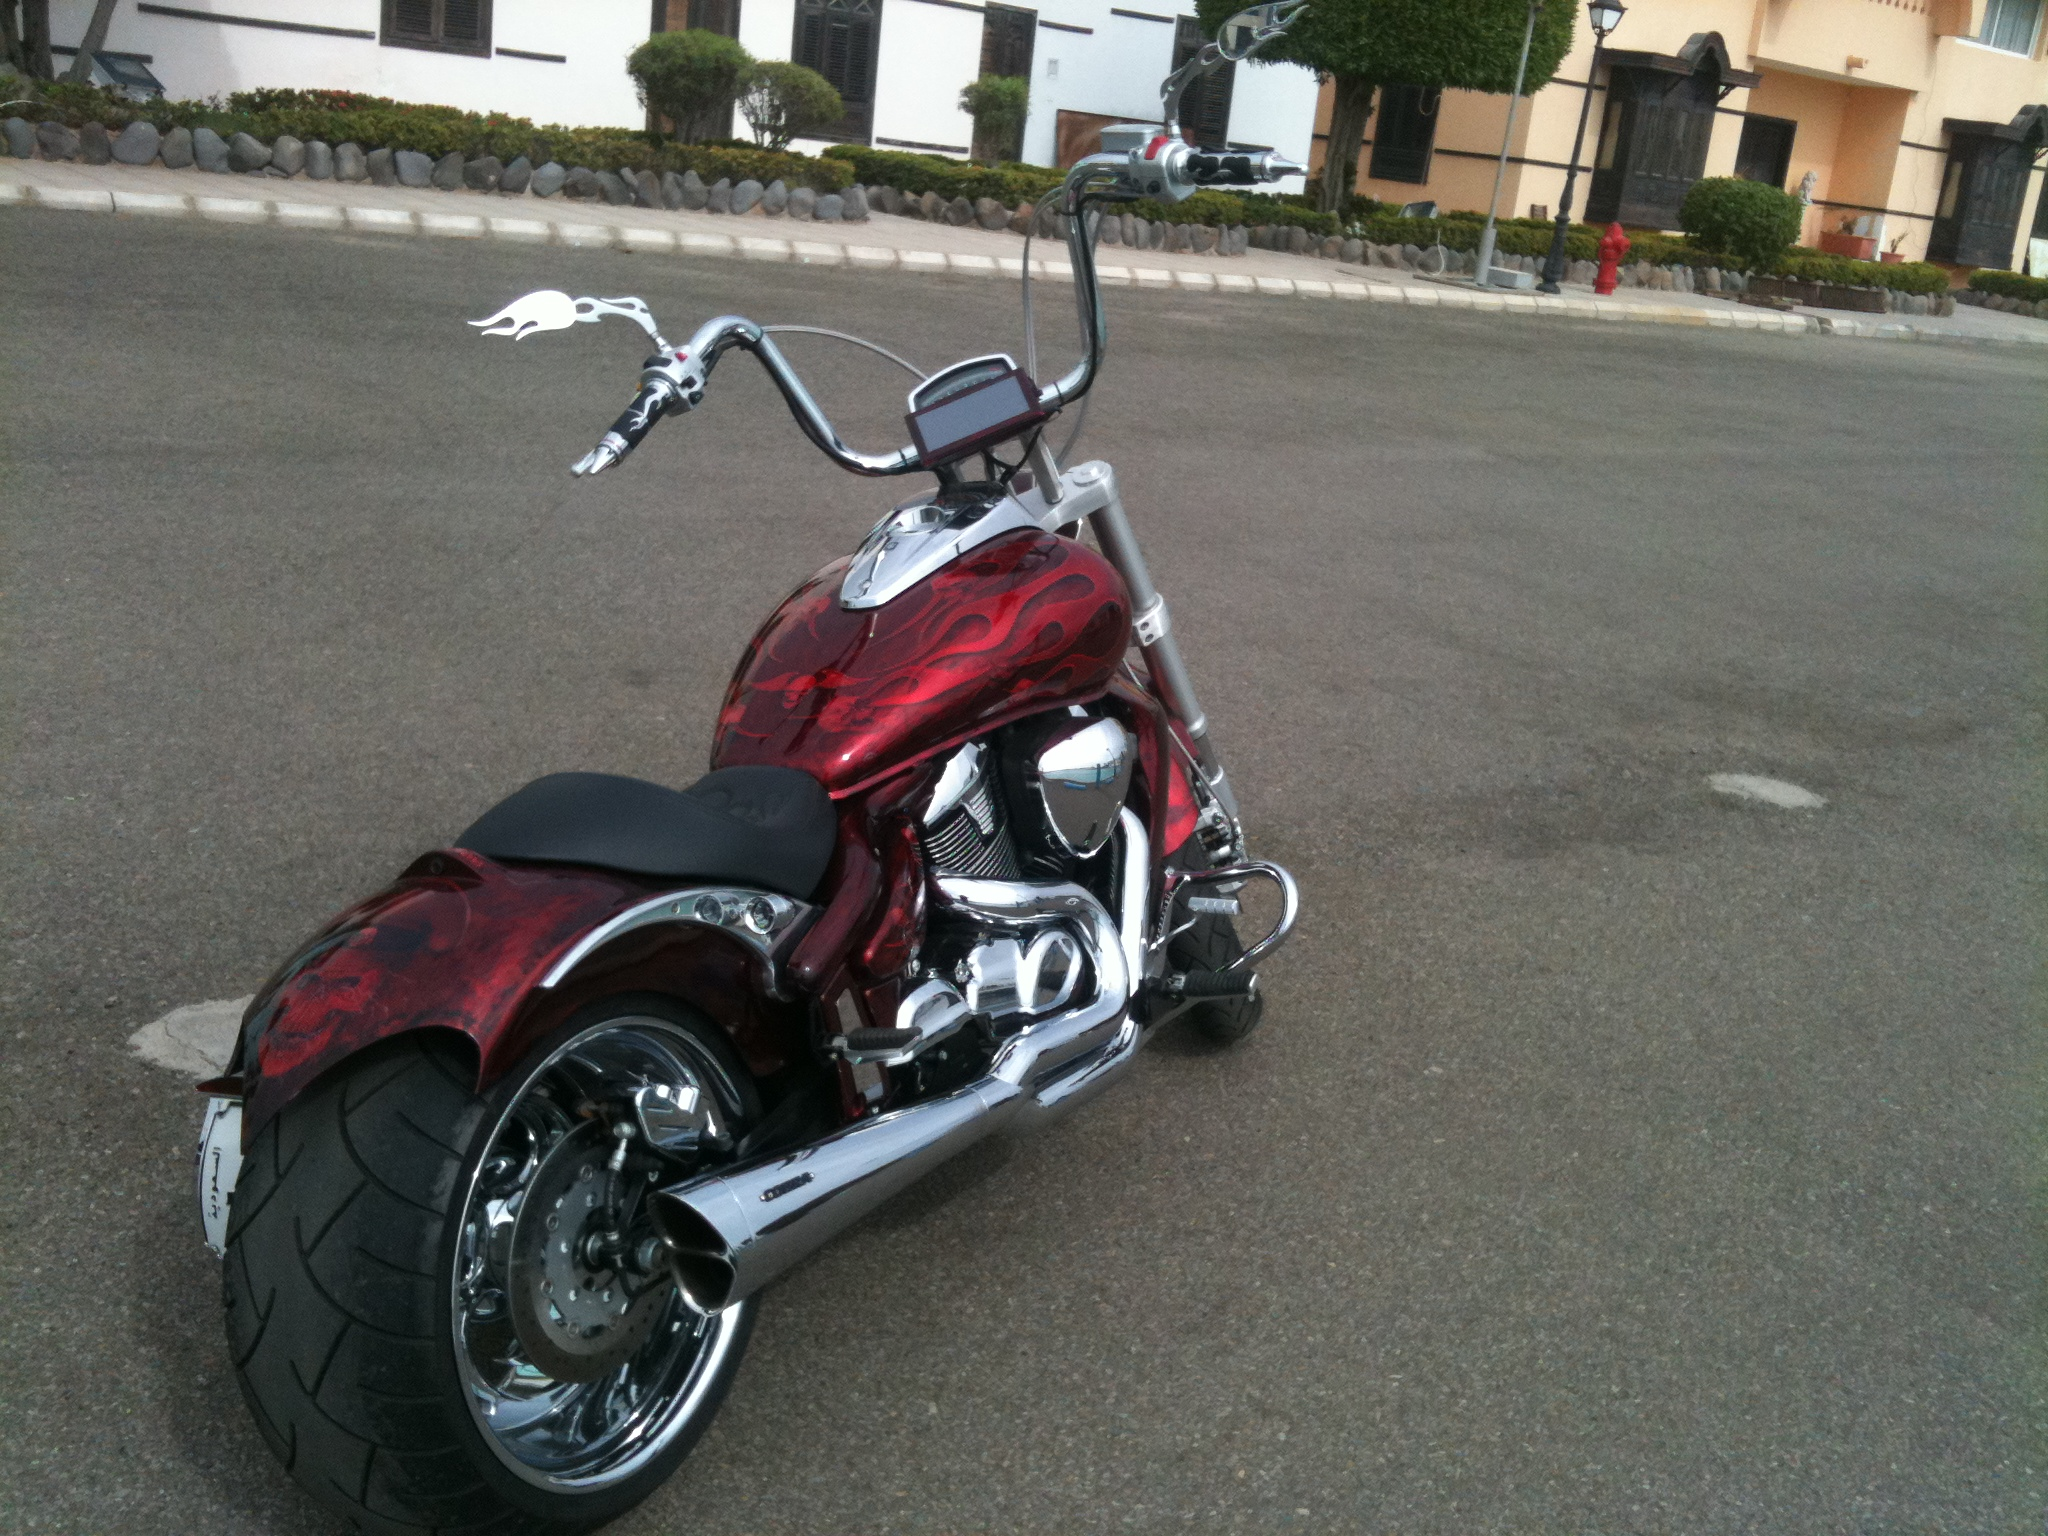 LETS SEE THE CUSTOM PAINT JOBS ON YOUR DYNAs - Page 3